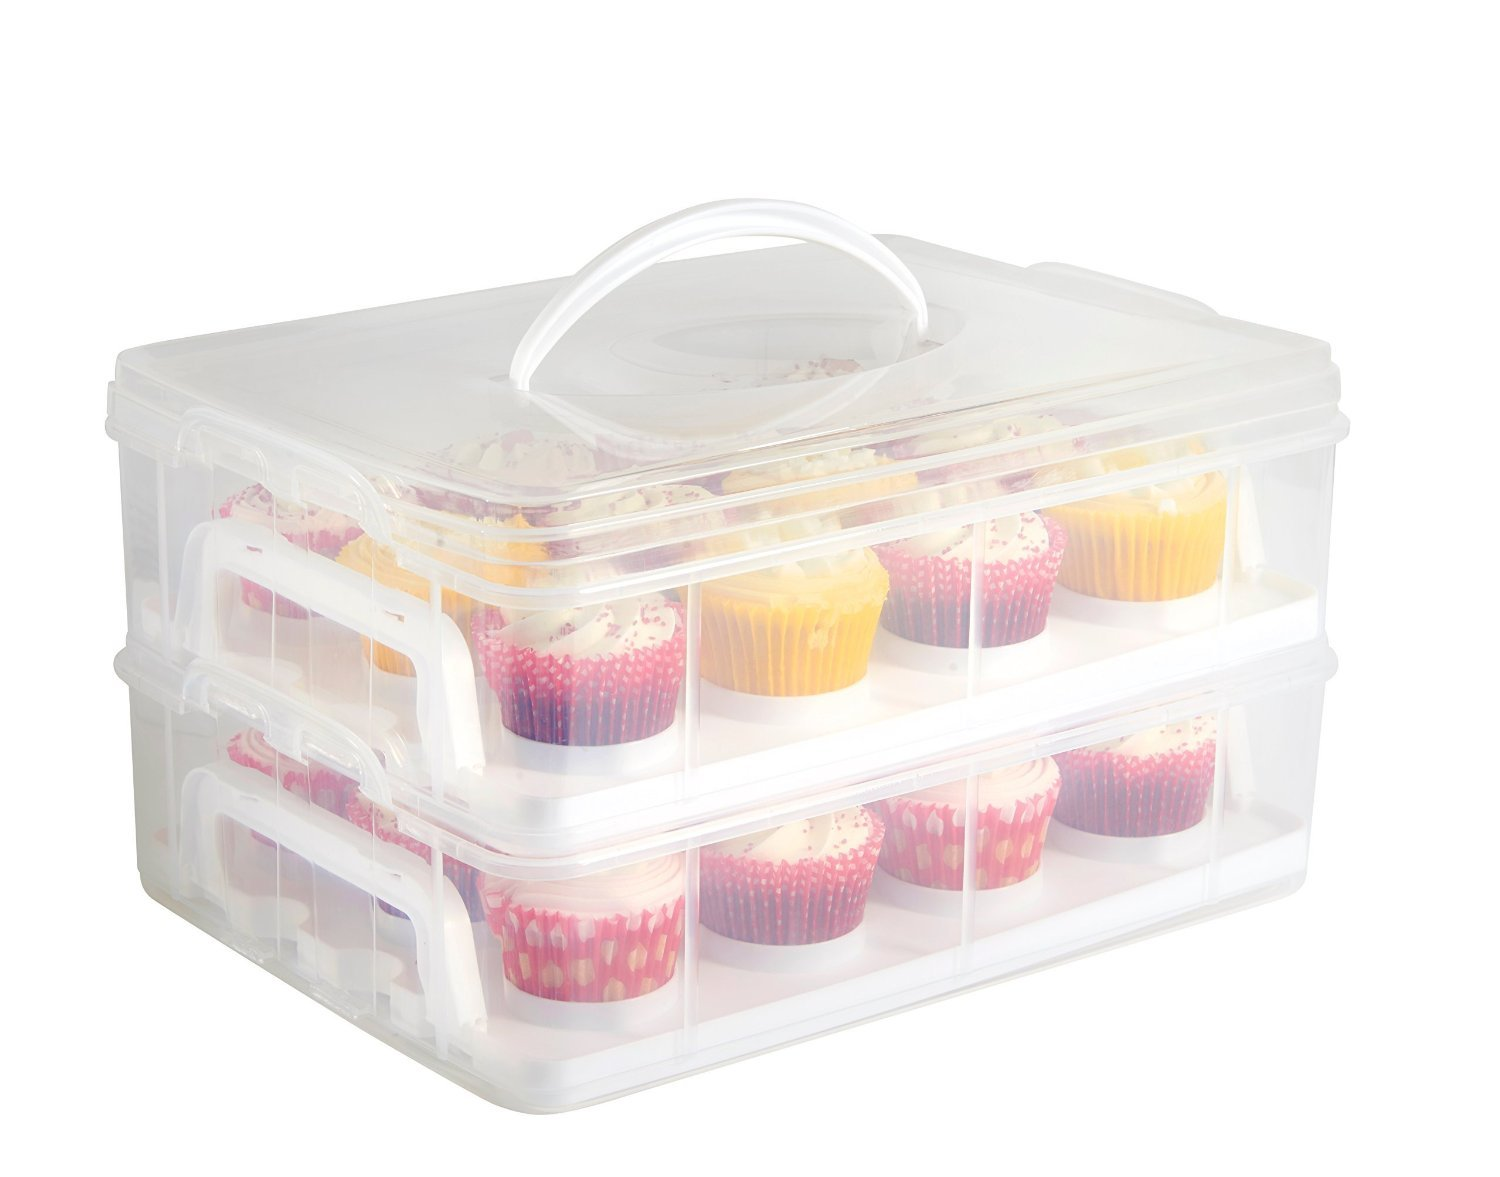 Cupcake Storage and Courier. Great for Storage and Carrying Cupcakes, Cookies and Other Cake Dessert. 2 Layer Keeper